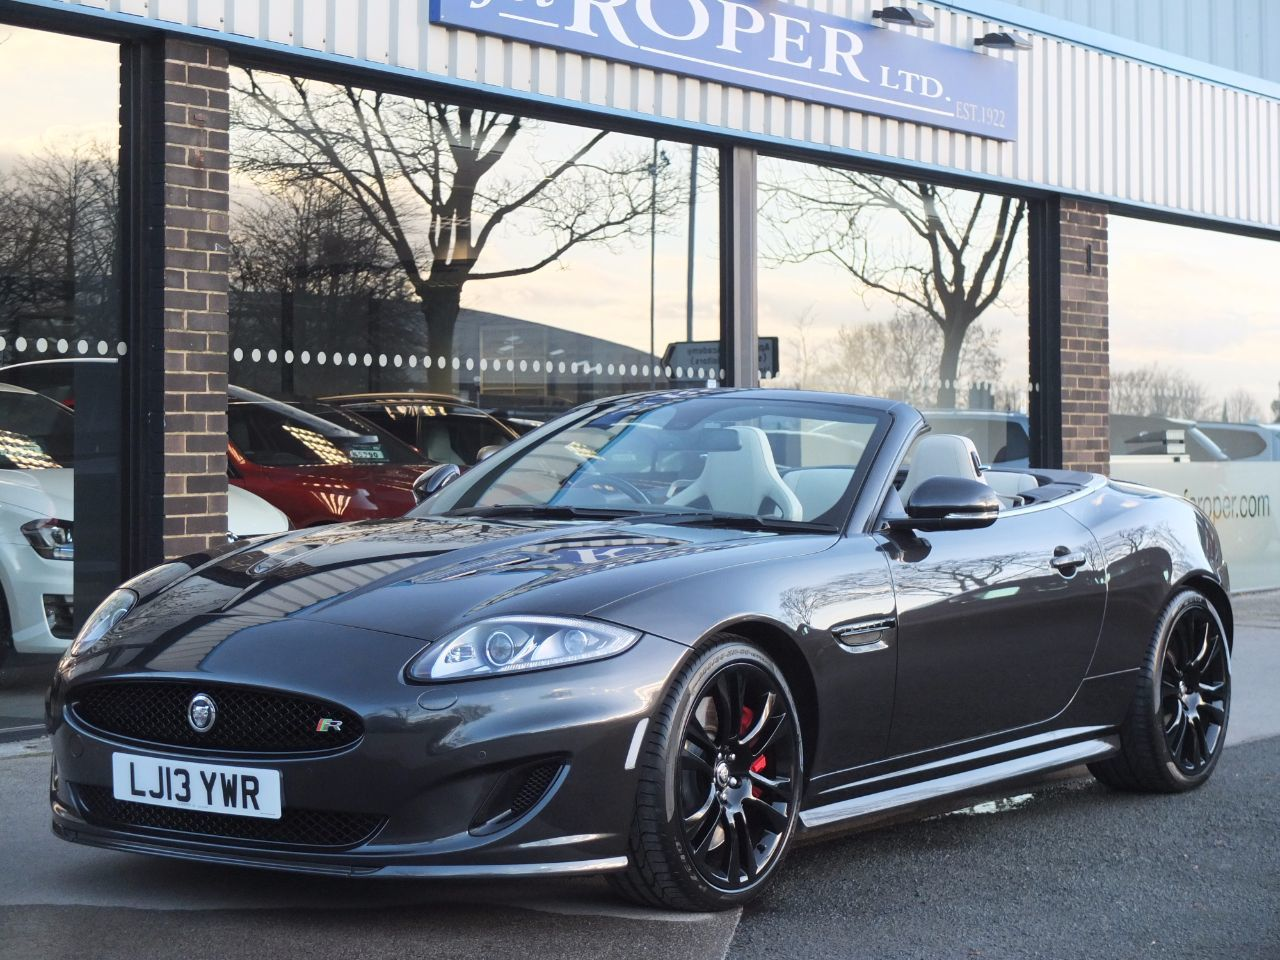 Jaguar XK Convertible 5.0 Supercharged V8 R Auto (Speed Body Pack, Performance Seats) Convertible Petrol Stratus Grey Metallic